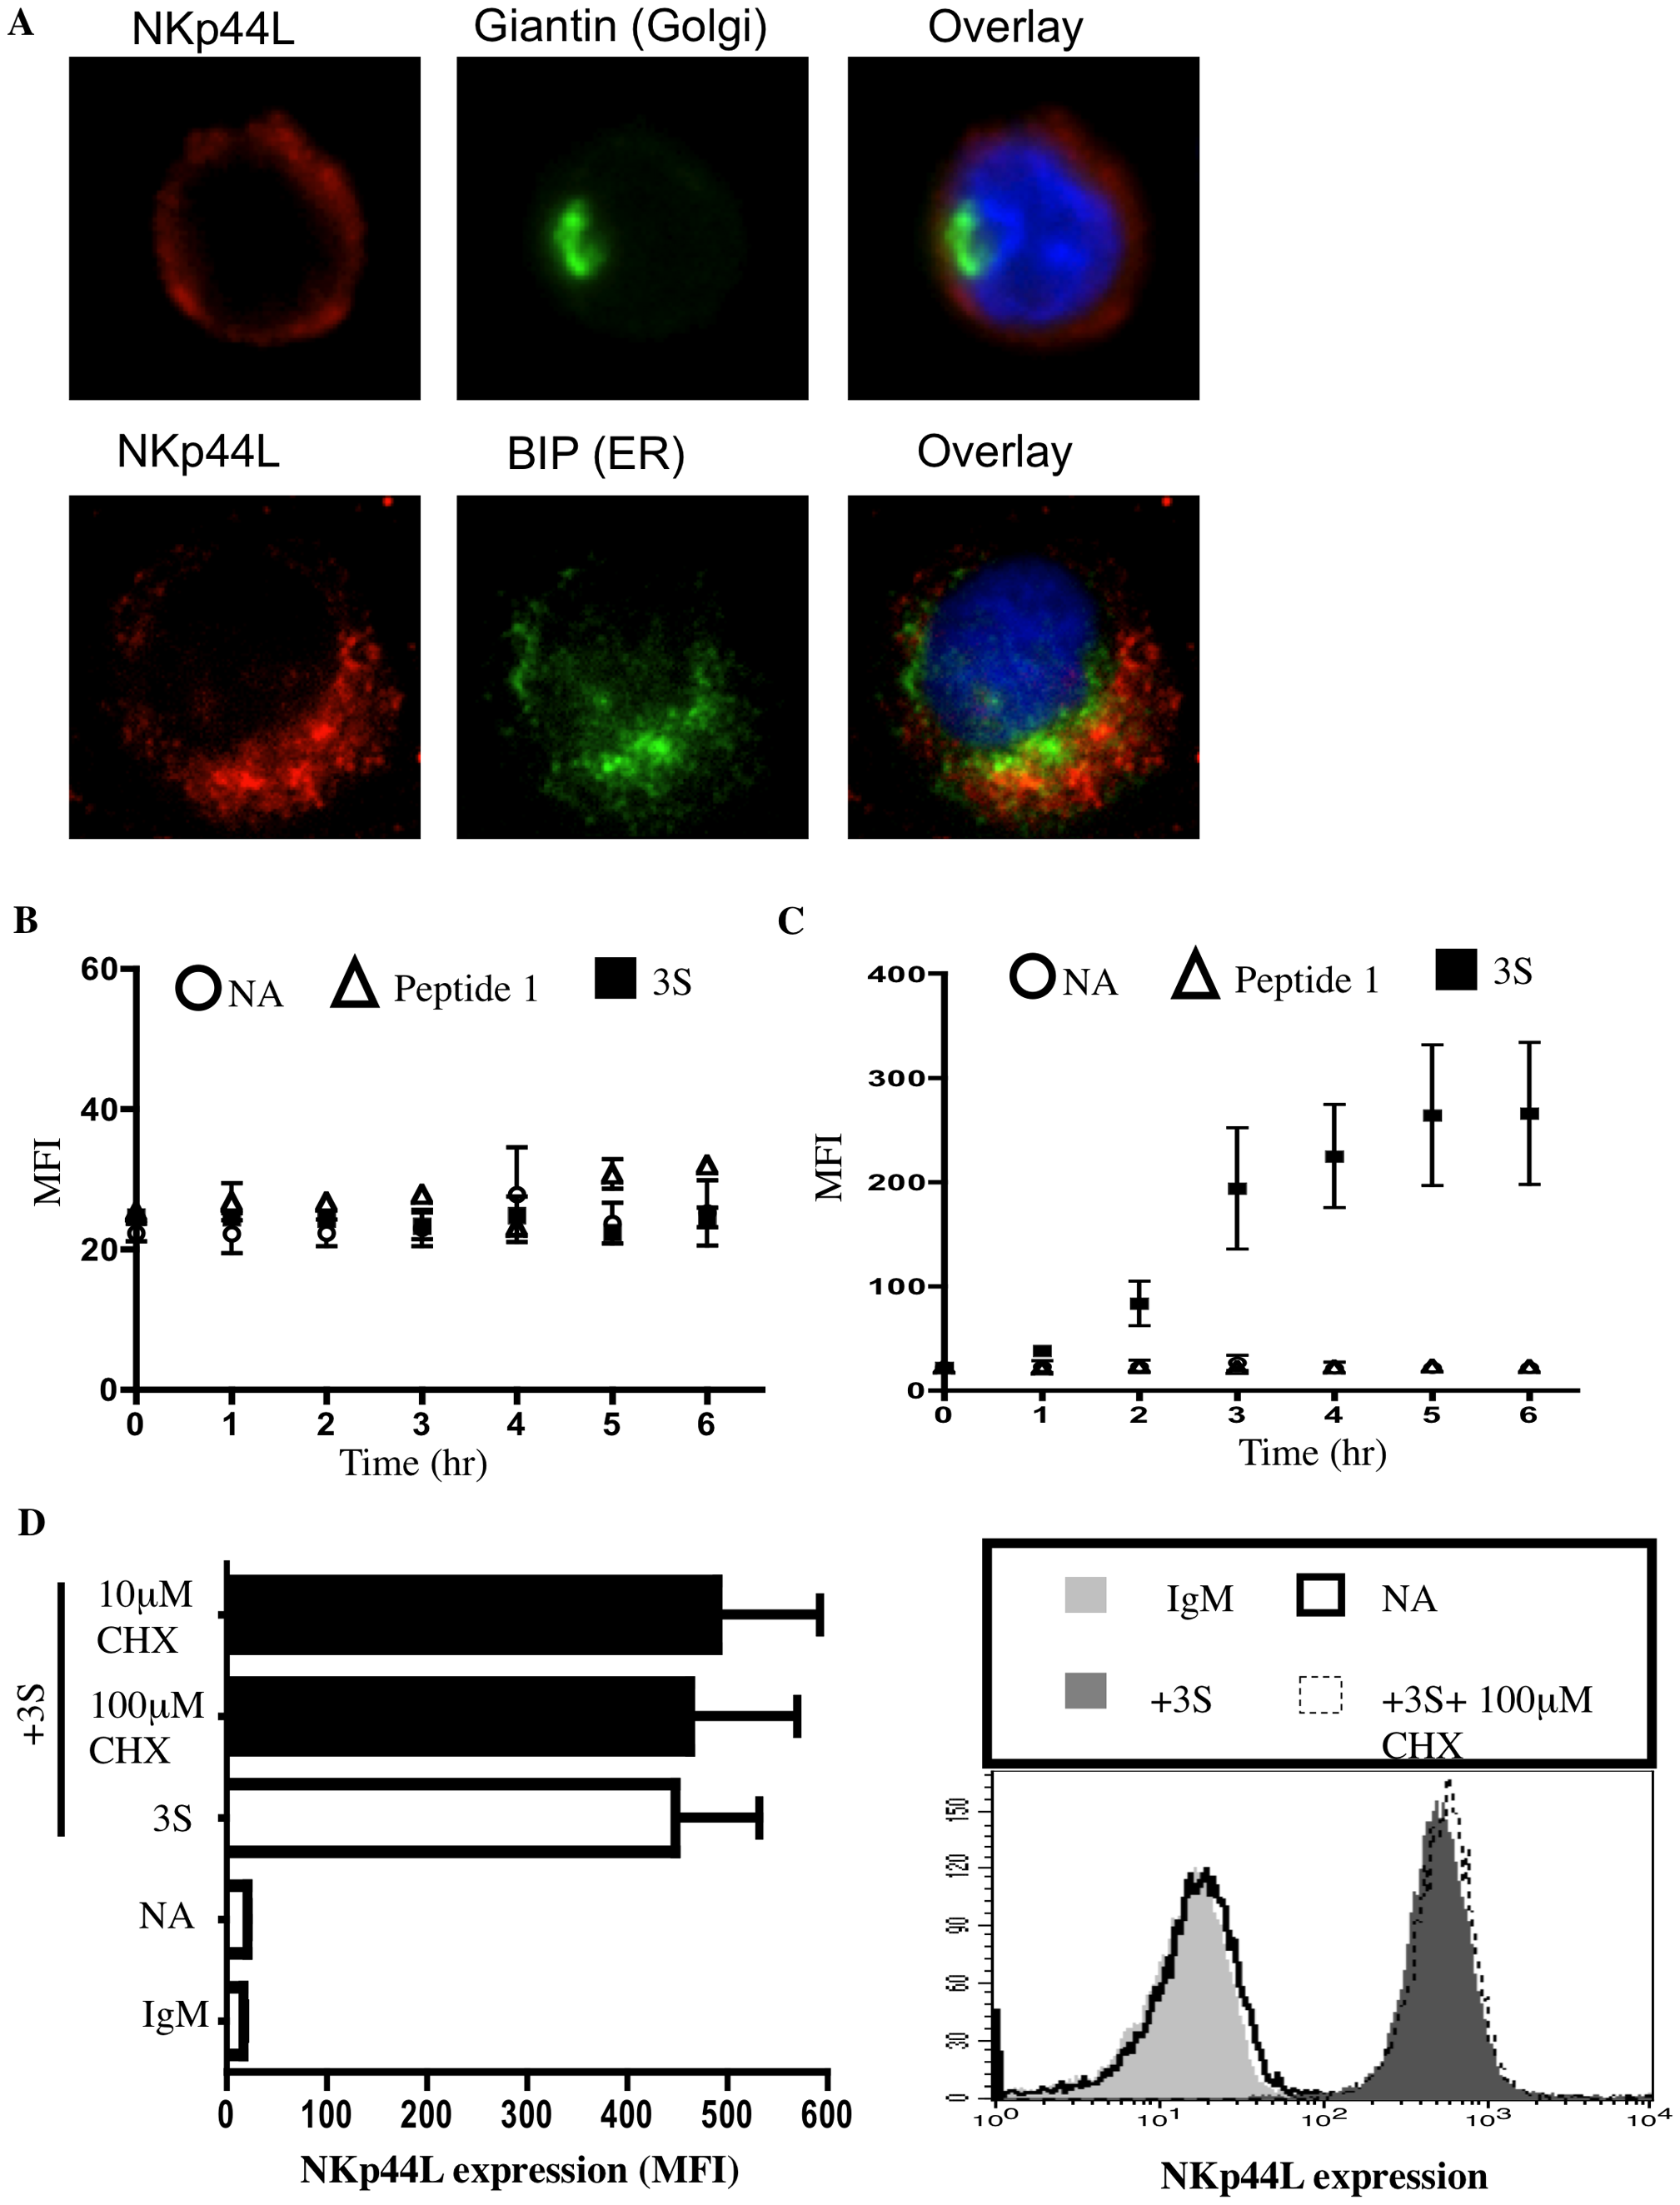 The 3S peptide induces translocation of NKp44L to the cell surface.